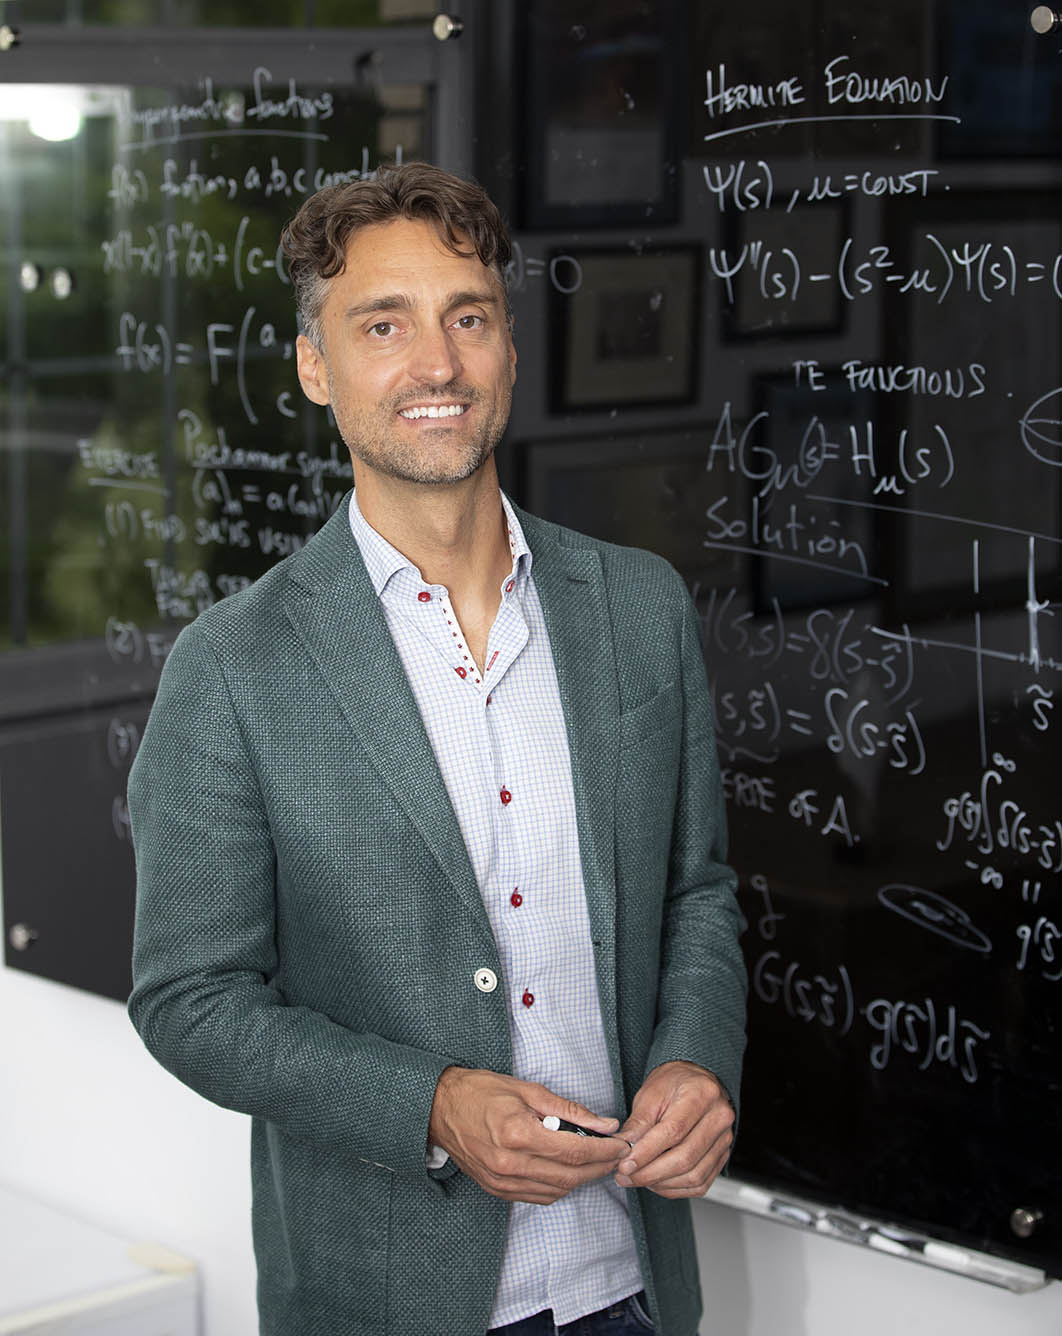 nathan geer stands in front of a blackboard with mathematical equations scrawled on it